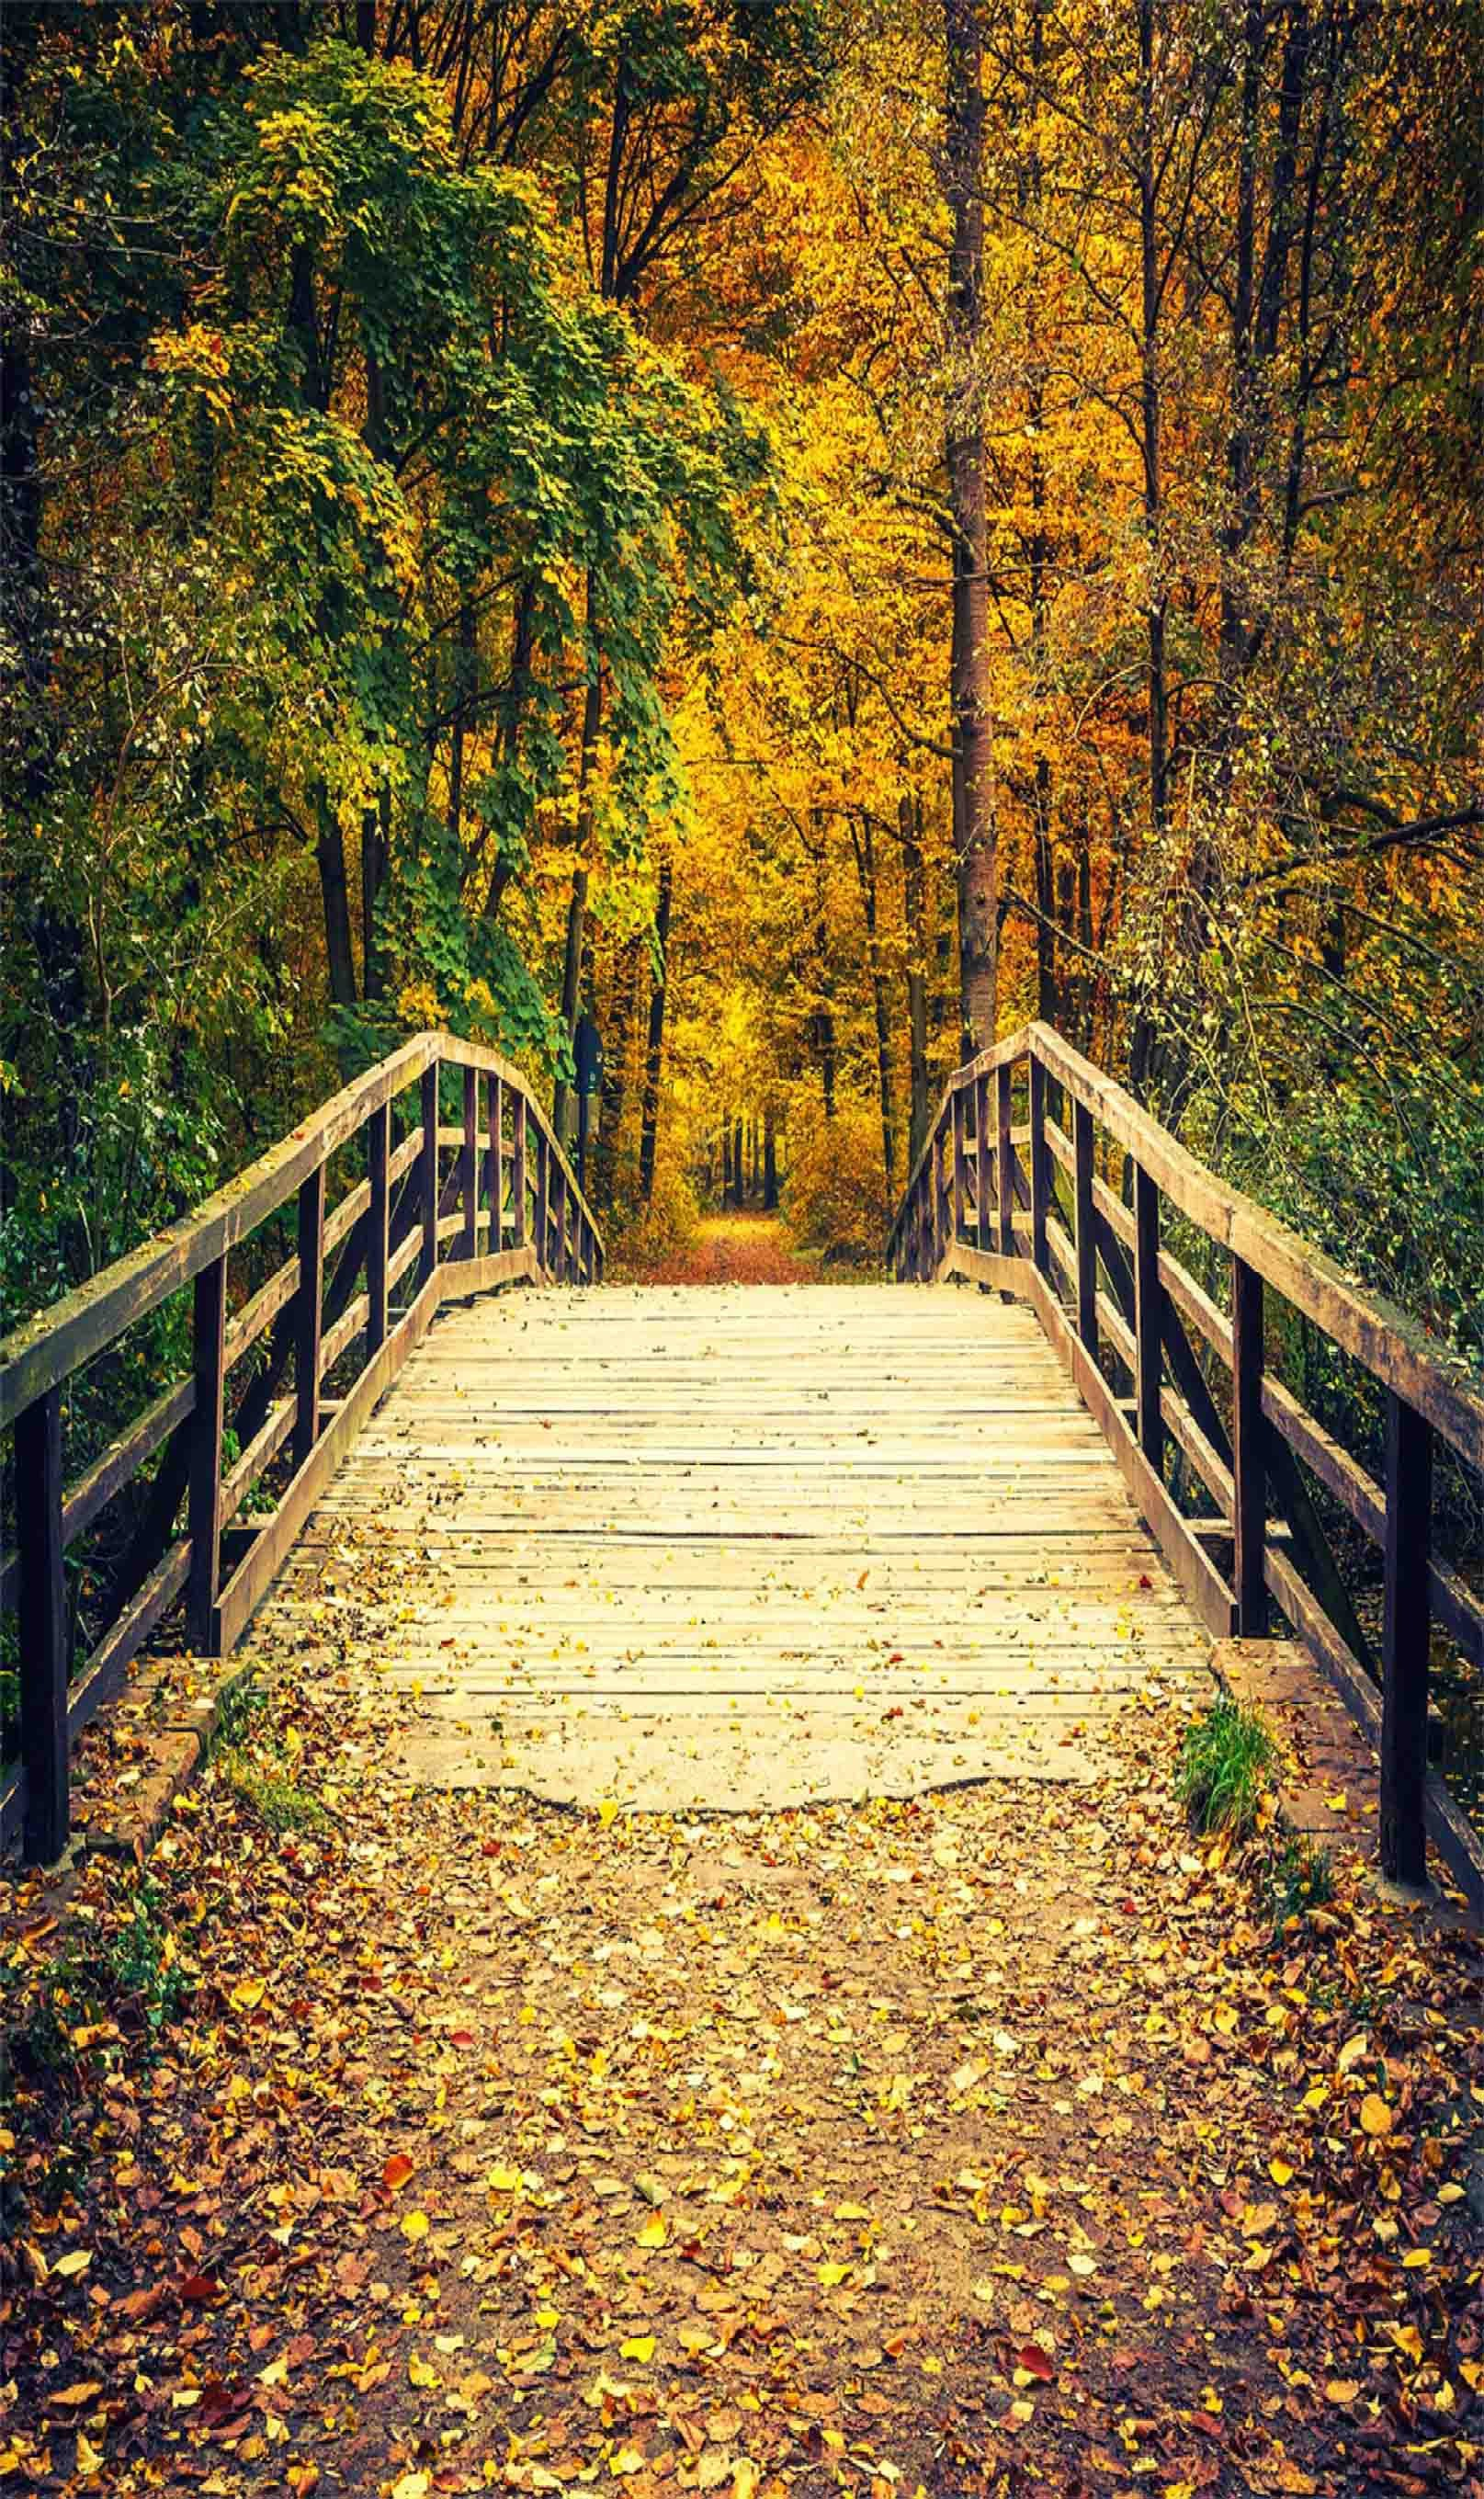 3D Forest Wooden Bridge 779 Stair Risers Wallpaper AJ Wallpaper